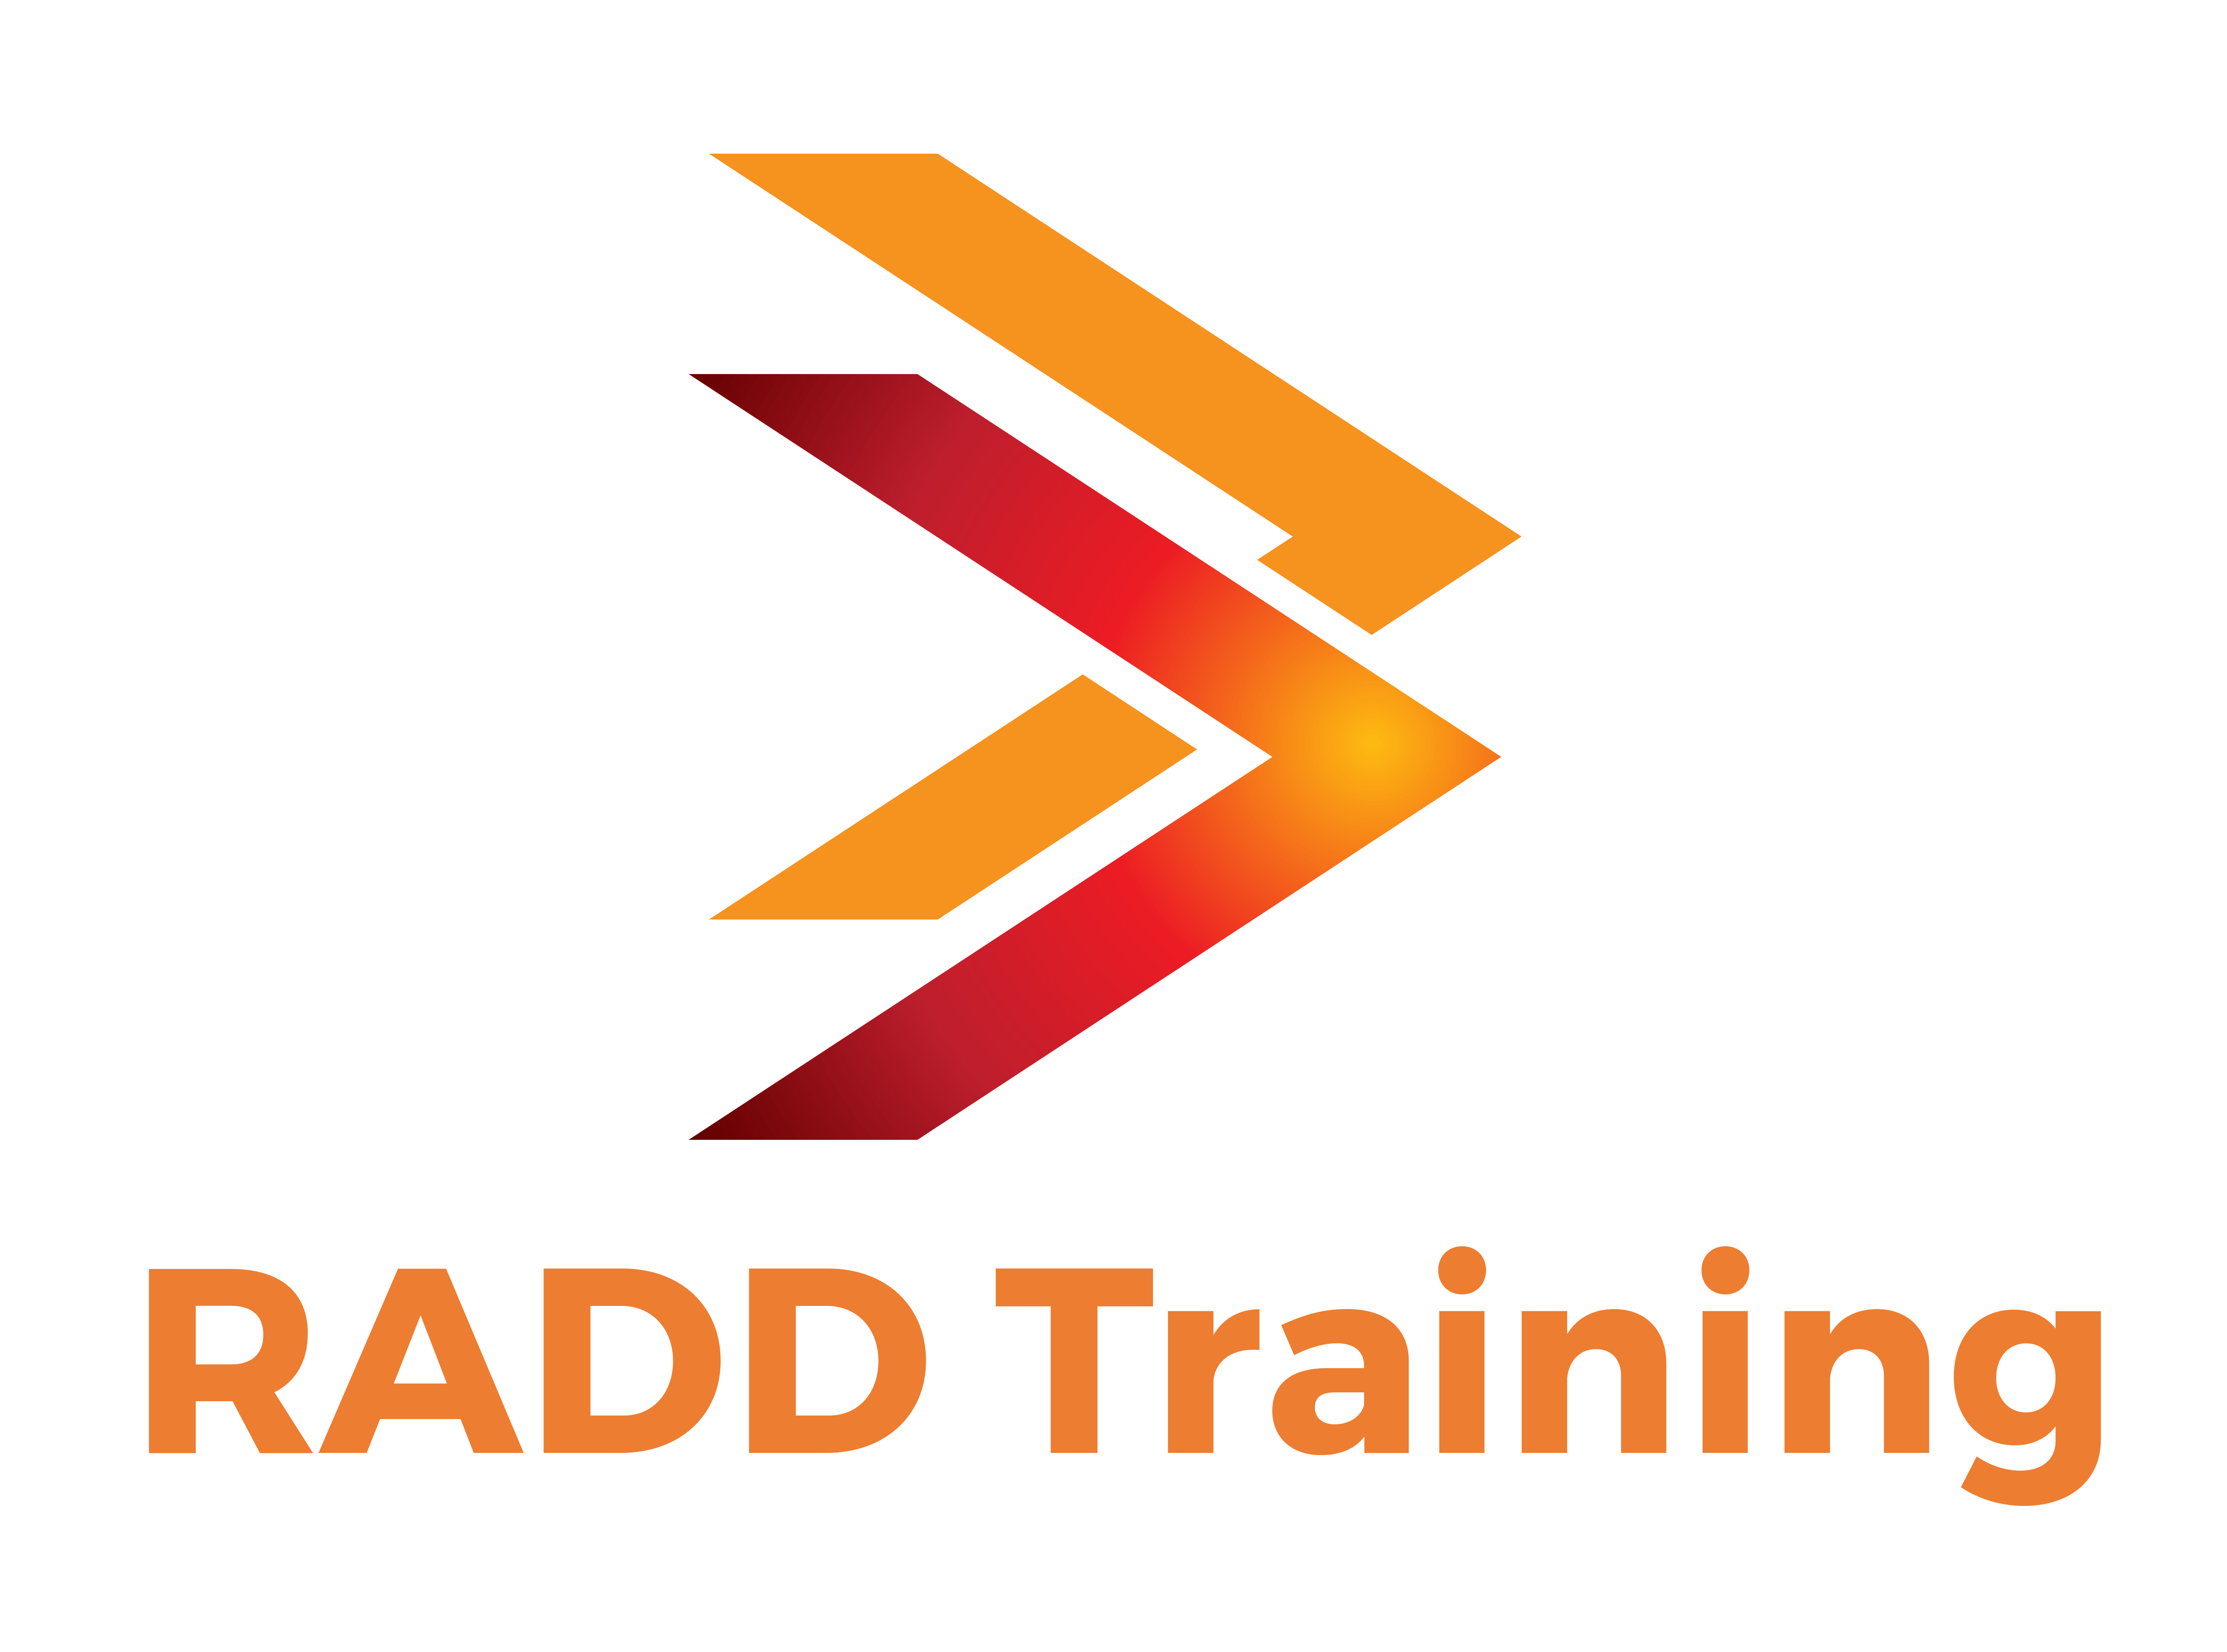 RADD Training Limited